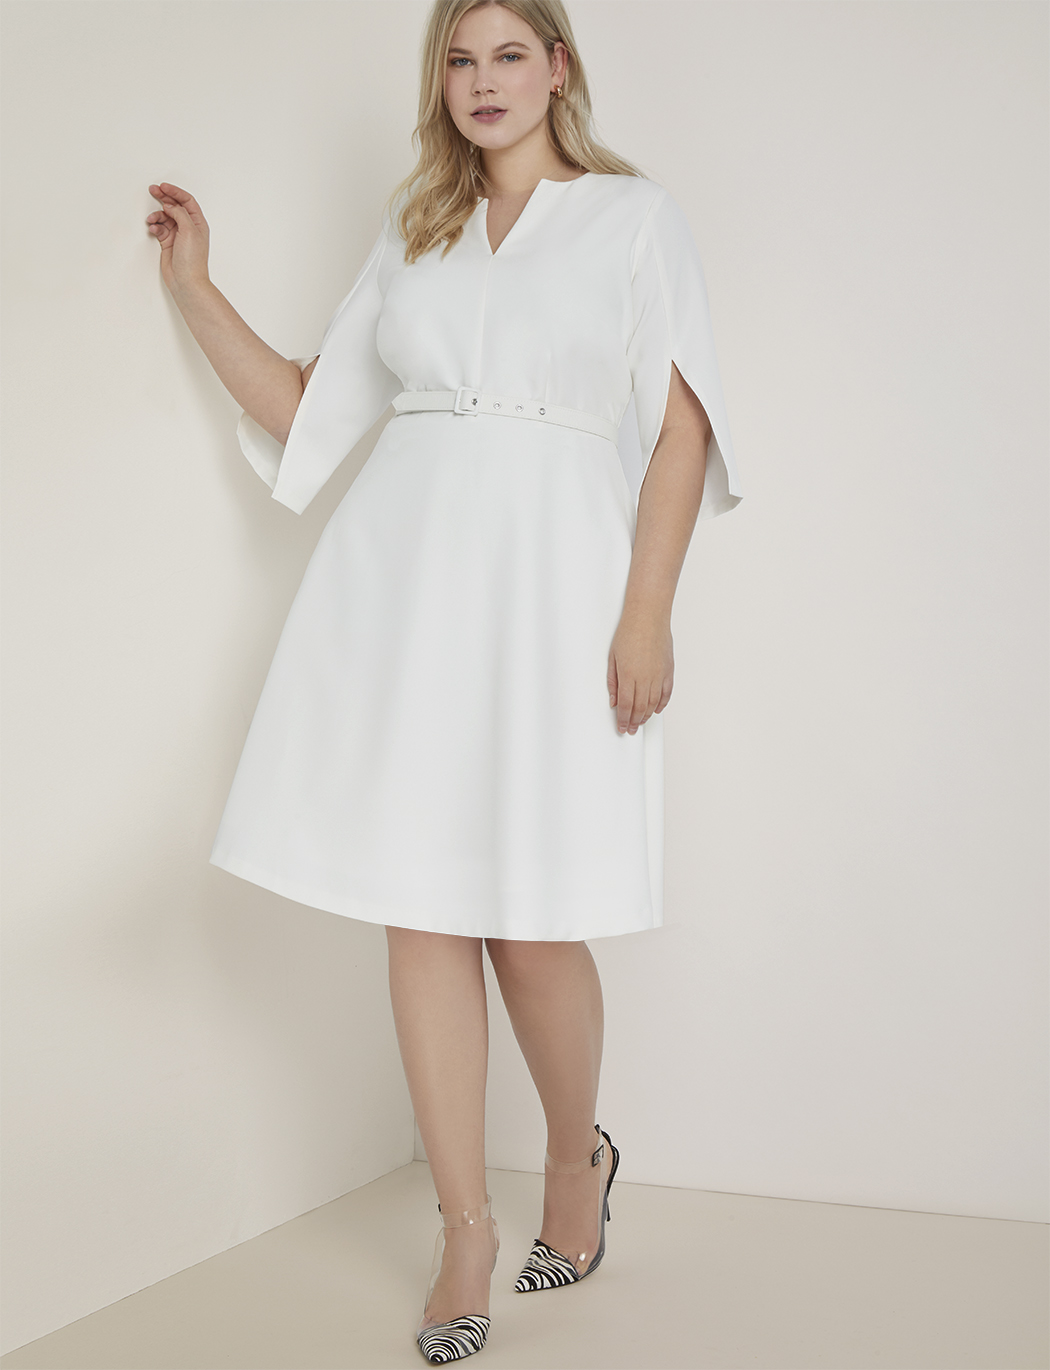 Slit Sleeve Fit and Flare Dress | Women\'s Plus Size Dresses | ELOQUII